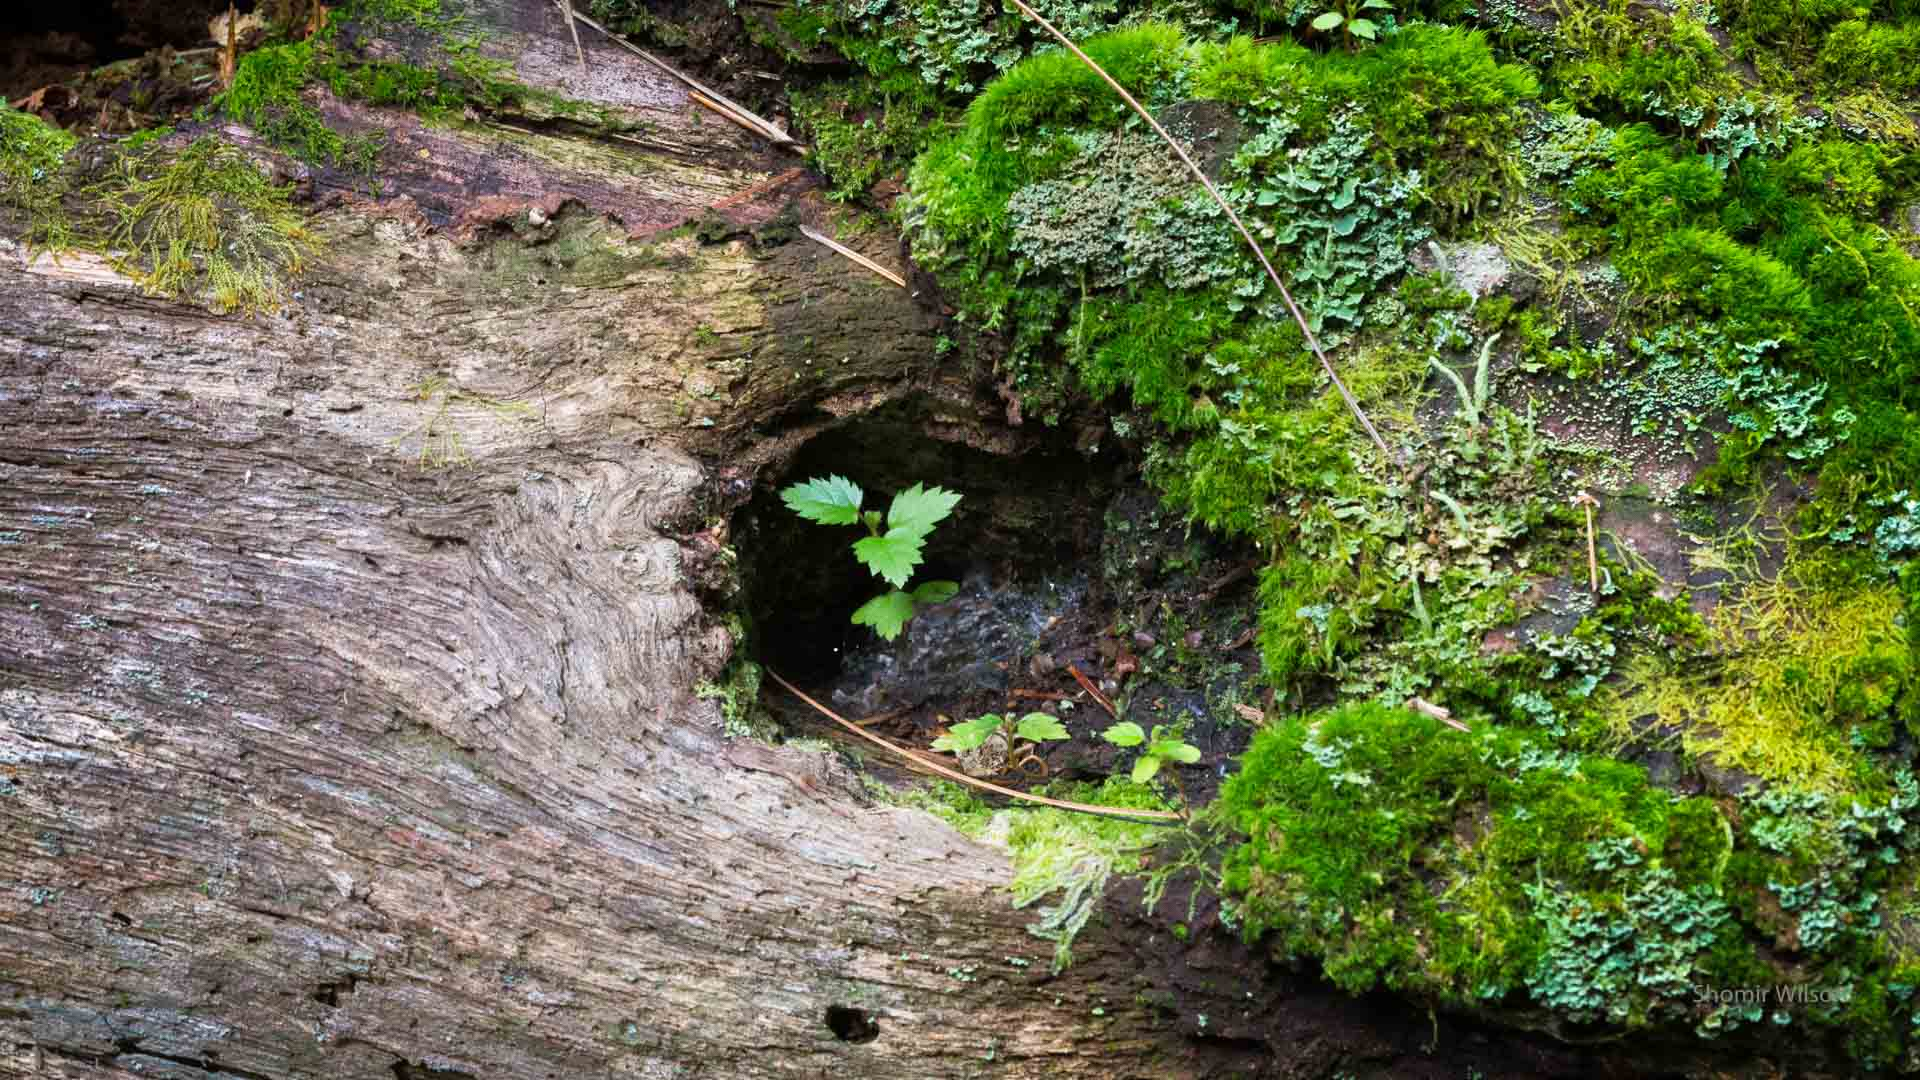 small plants and moss growing on a tree trunk